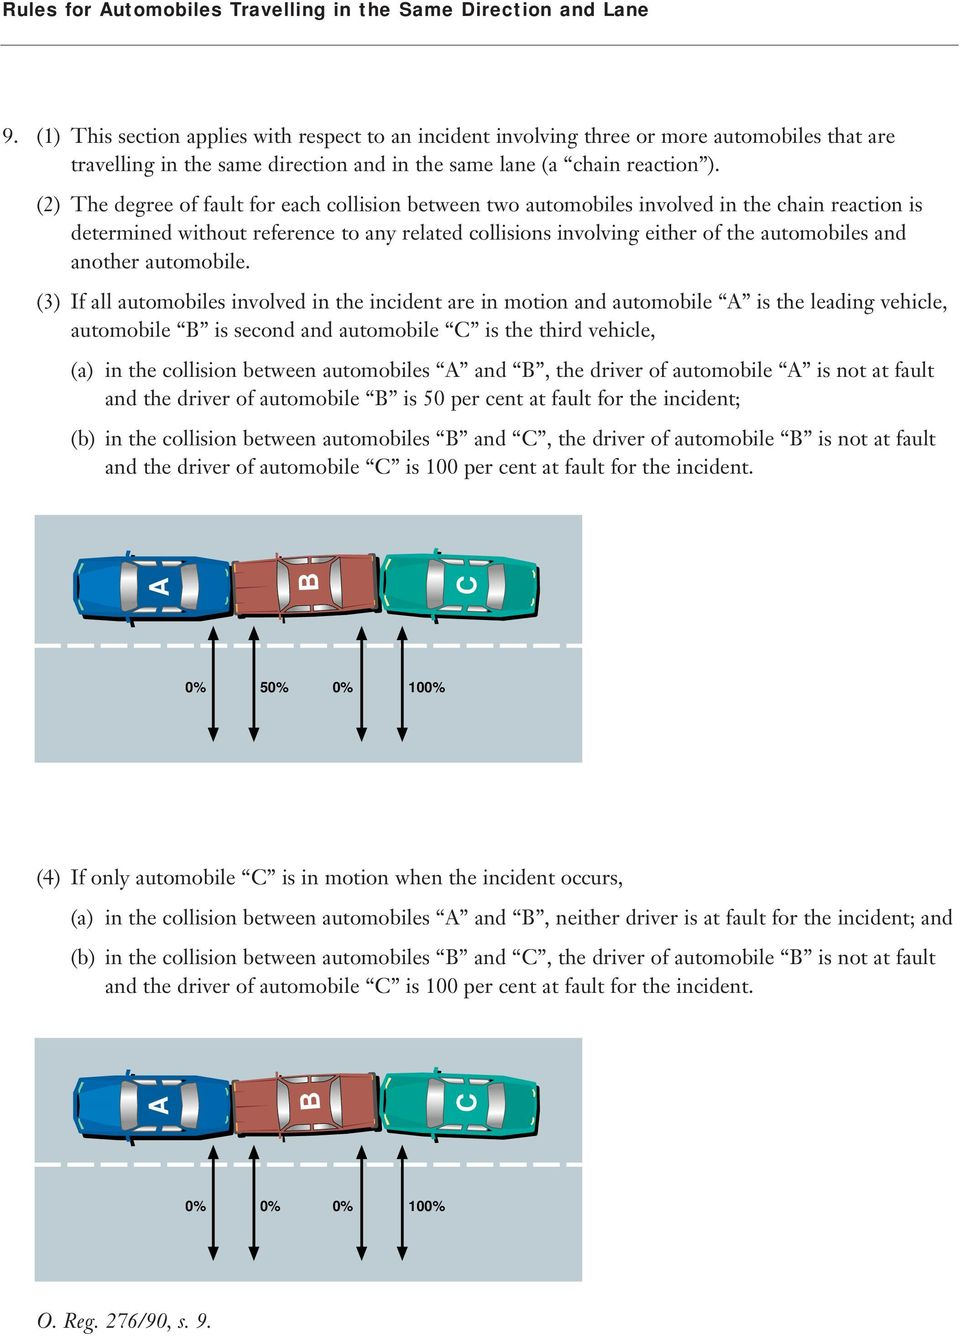 (2) The degree of fault for each collision between two automobiles involved in the chain reaction is determined without reference to any related collisions involving either of the automobiles and